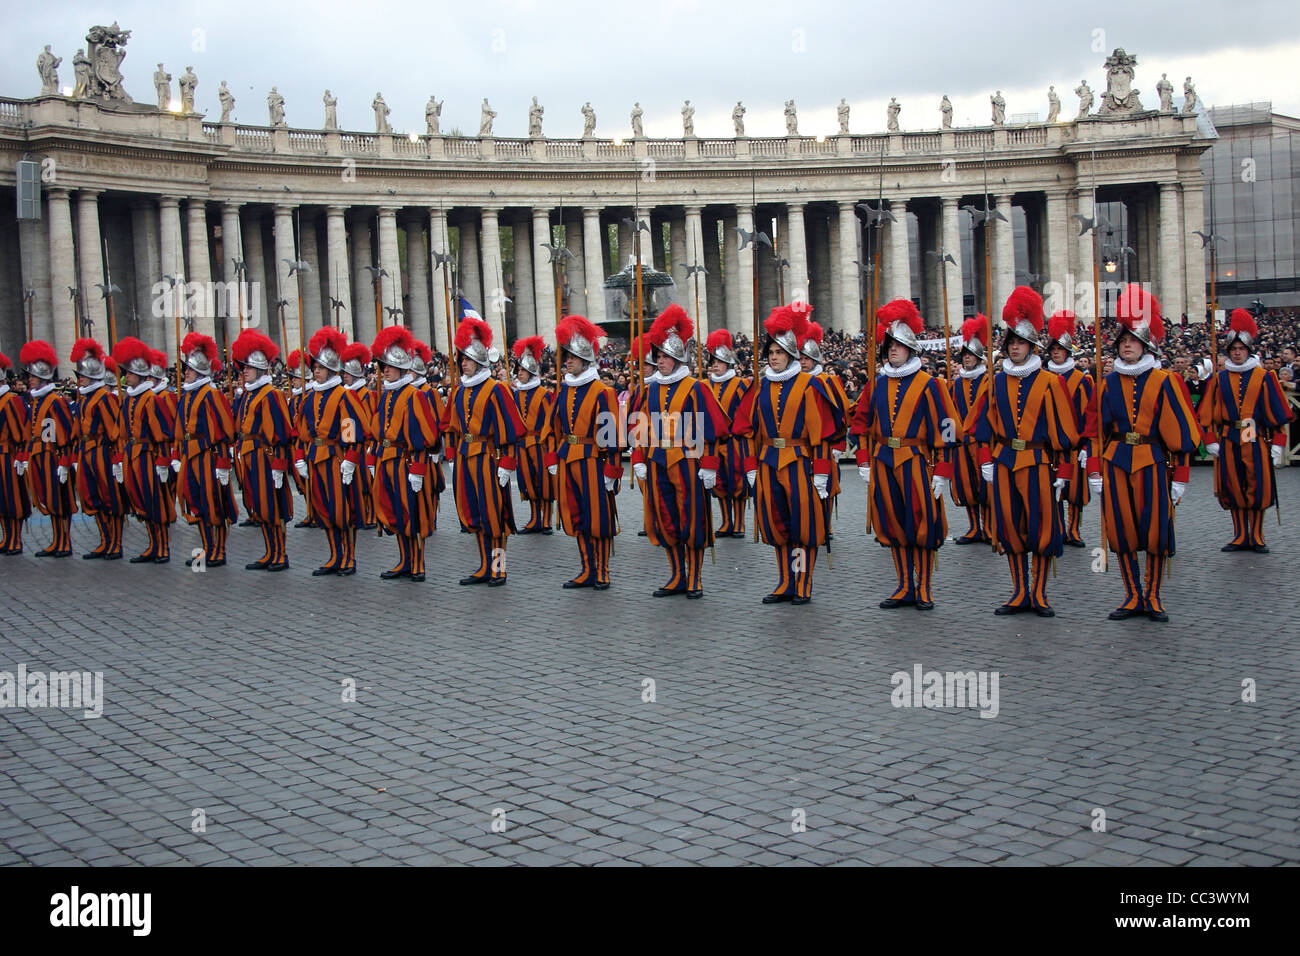 Vatican City 21St Century - April 20, 2005. Proclamation Of Pope Benedict XVI. Swiss Guards Parade - Stock Image